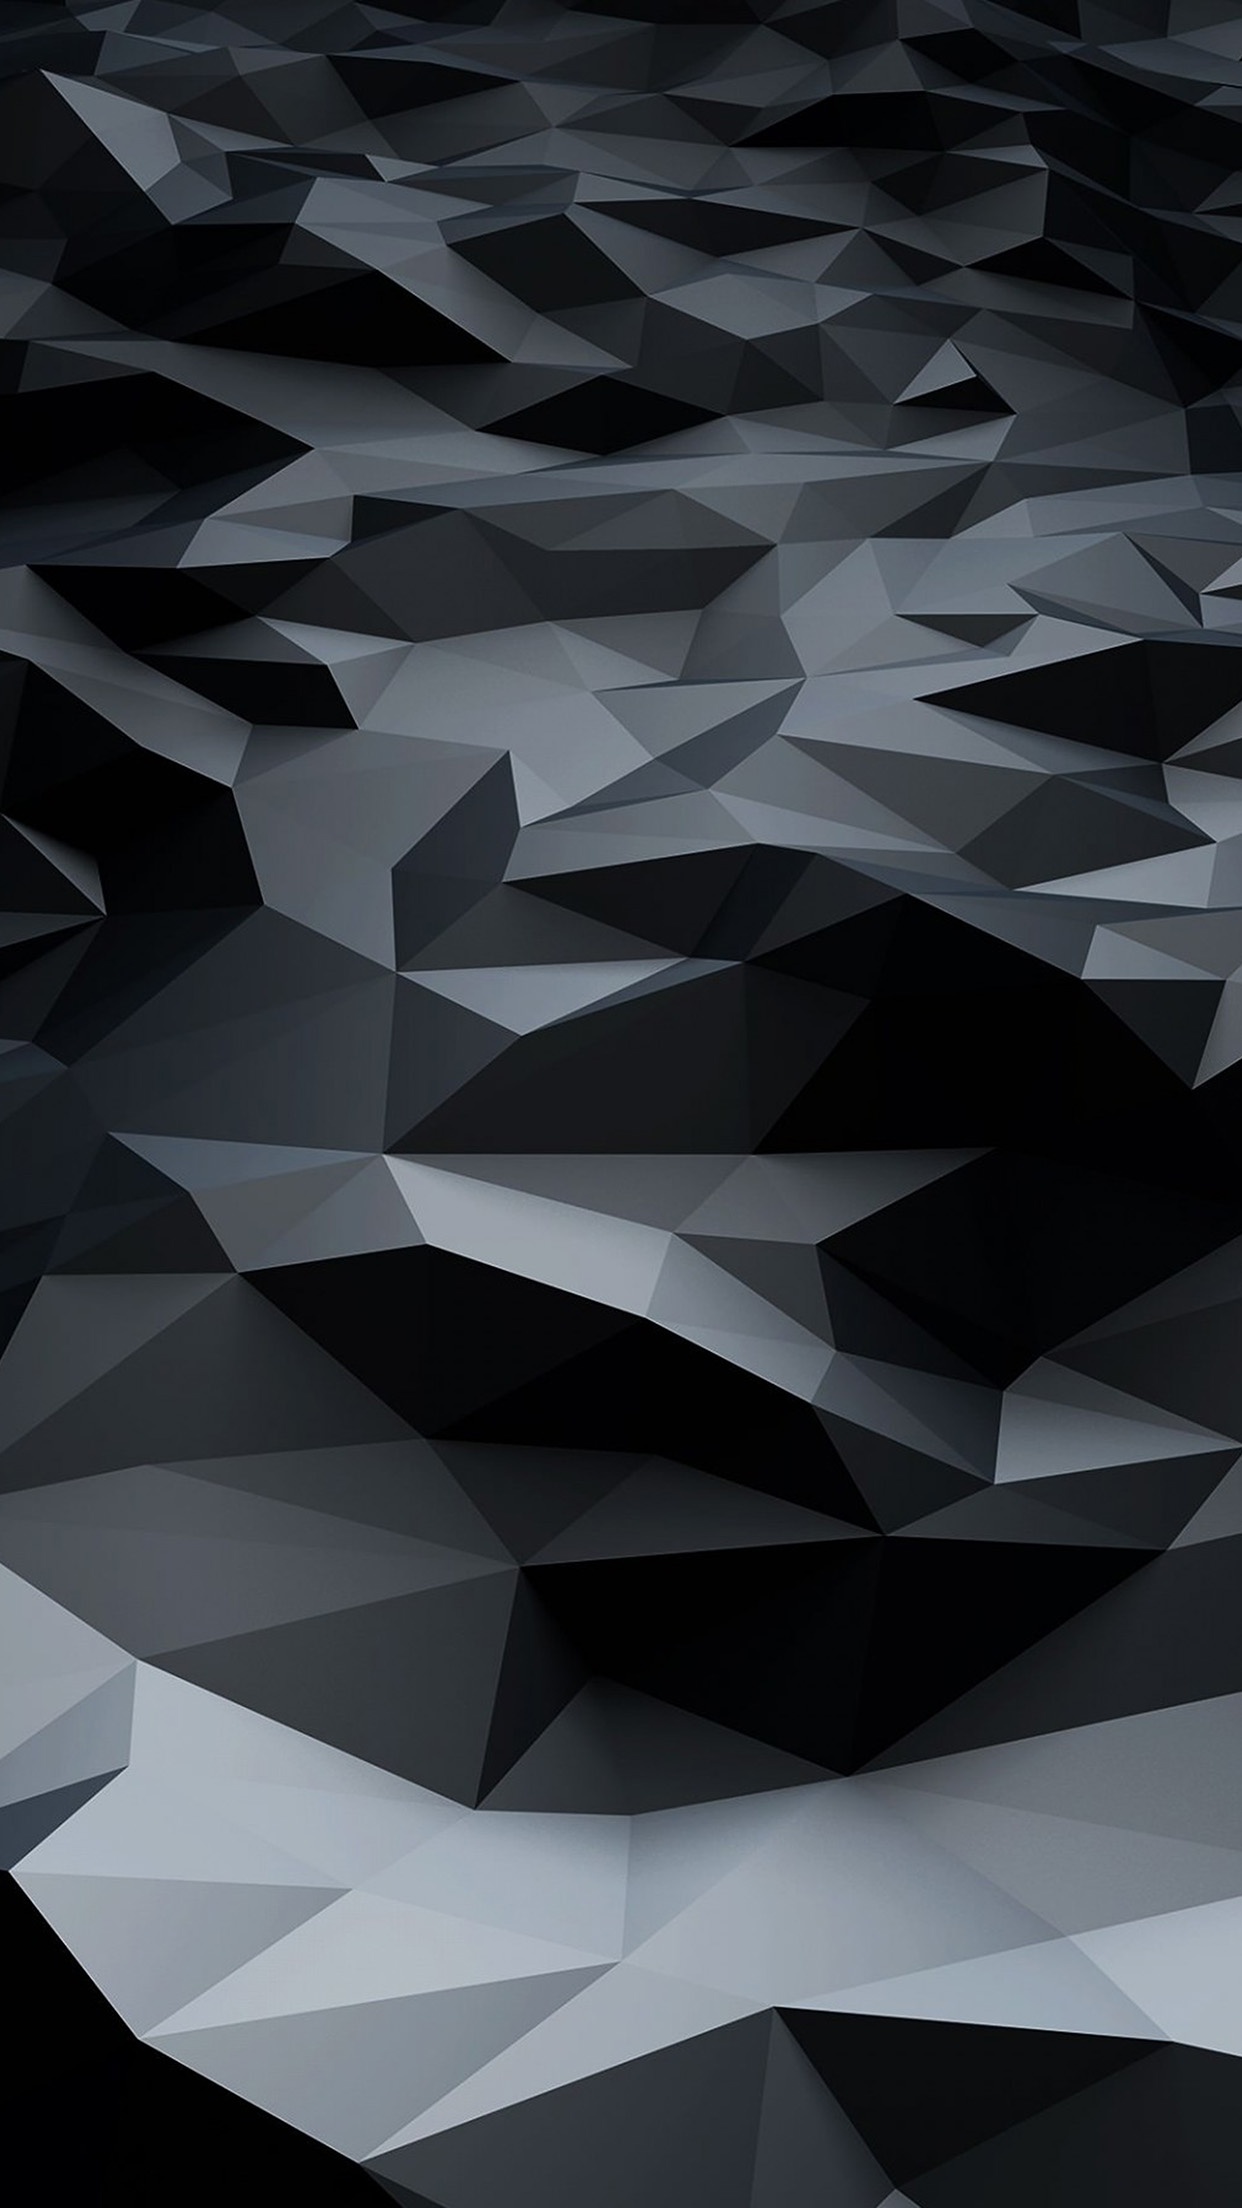 low poly iphone wallpaper  iPhone7papers - vj27-low-poly-art-dark-pattern